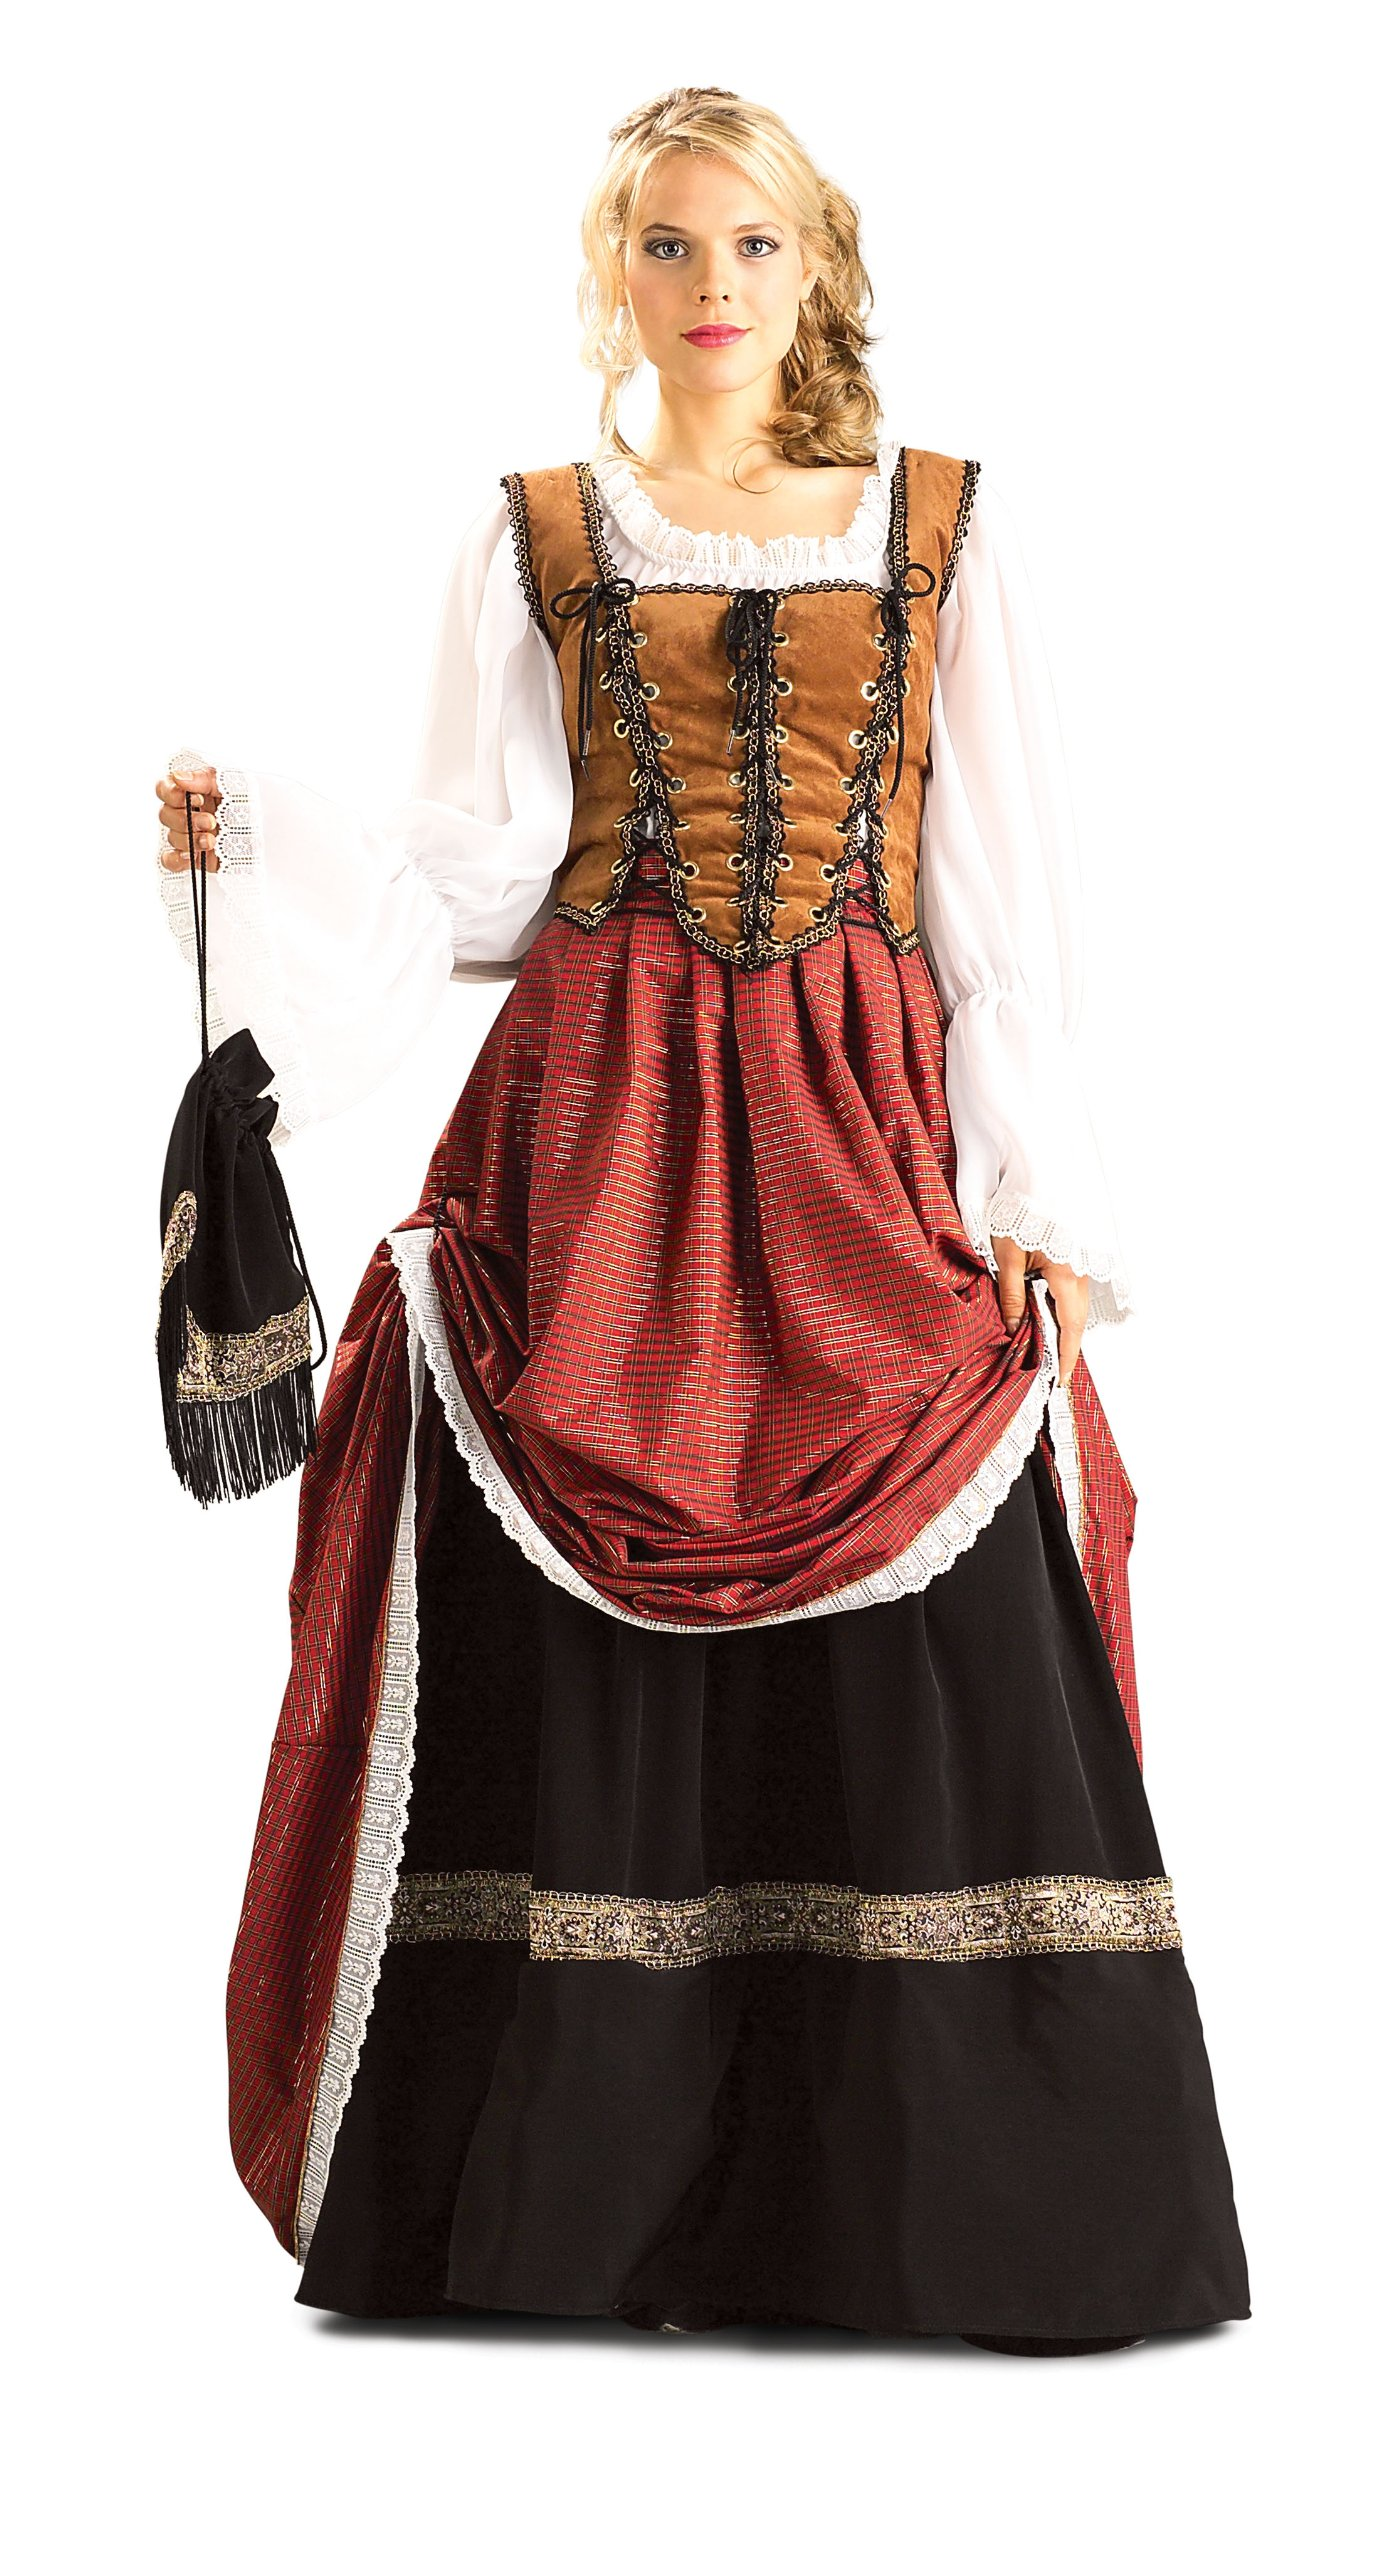 Rubie's Costume Grand Heritage Collection Deluxe Brigadoon Costume, Brown, Medium by Rubie's